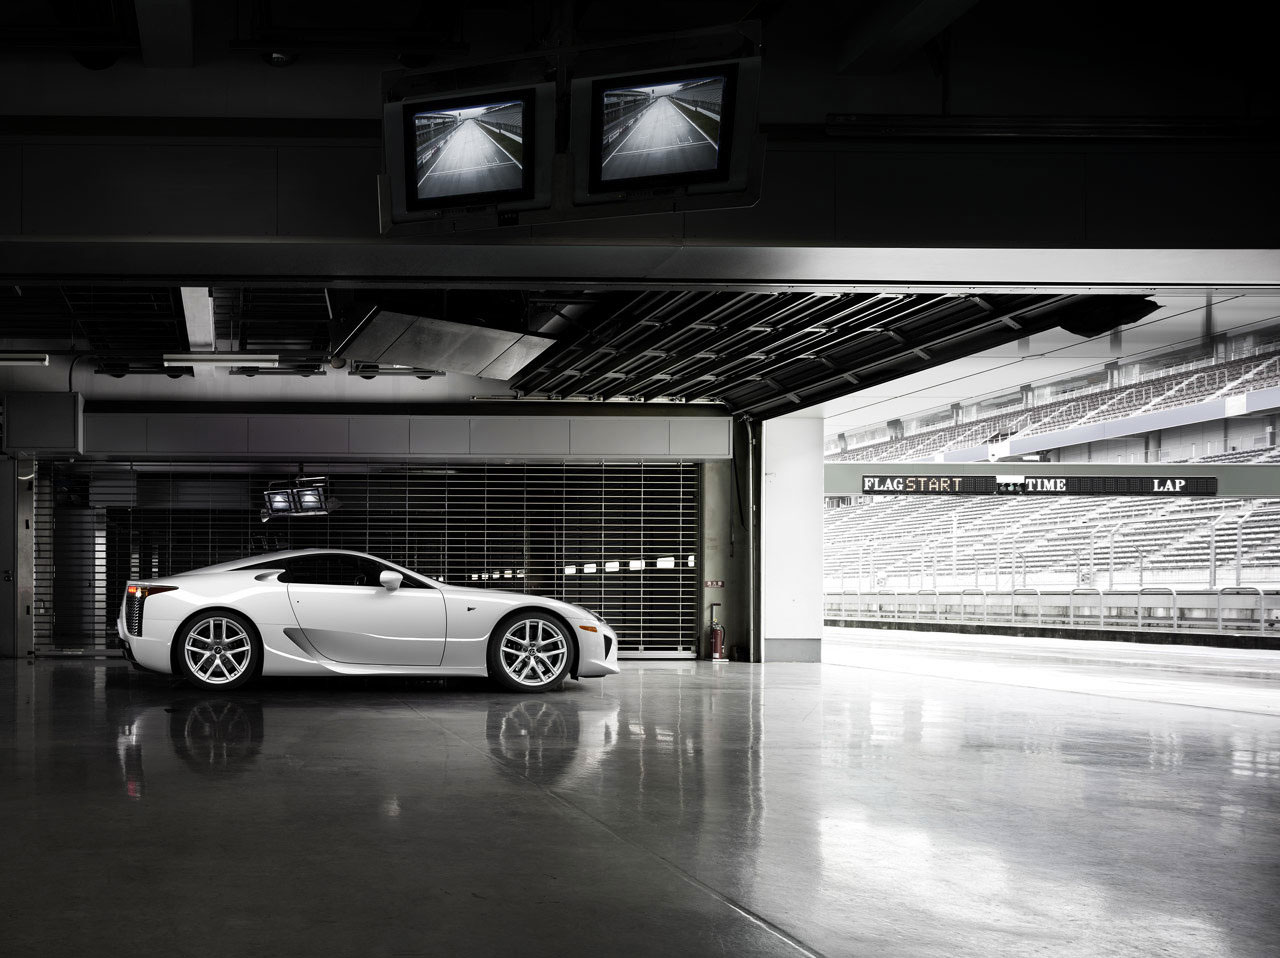 Five Years Ago, Lexus Decided To Develop A New Super Sport Car And They  Named Is The LFA. Several Weeks Ago, Lexus Finally Started Selling LFA  Models And ...